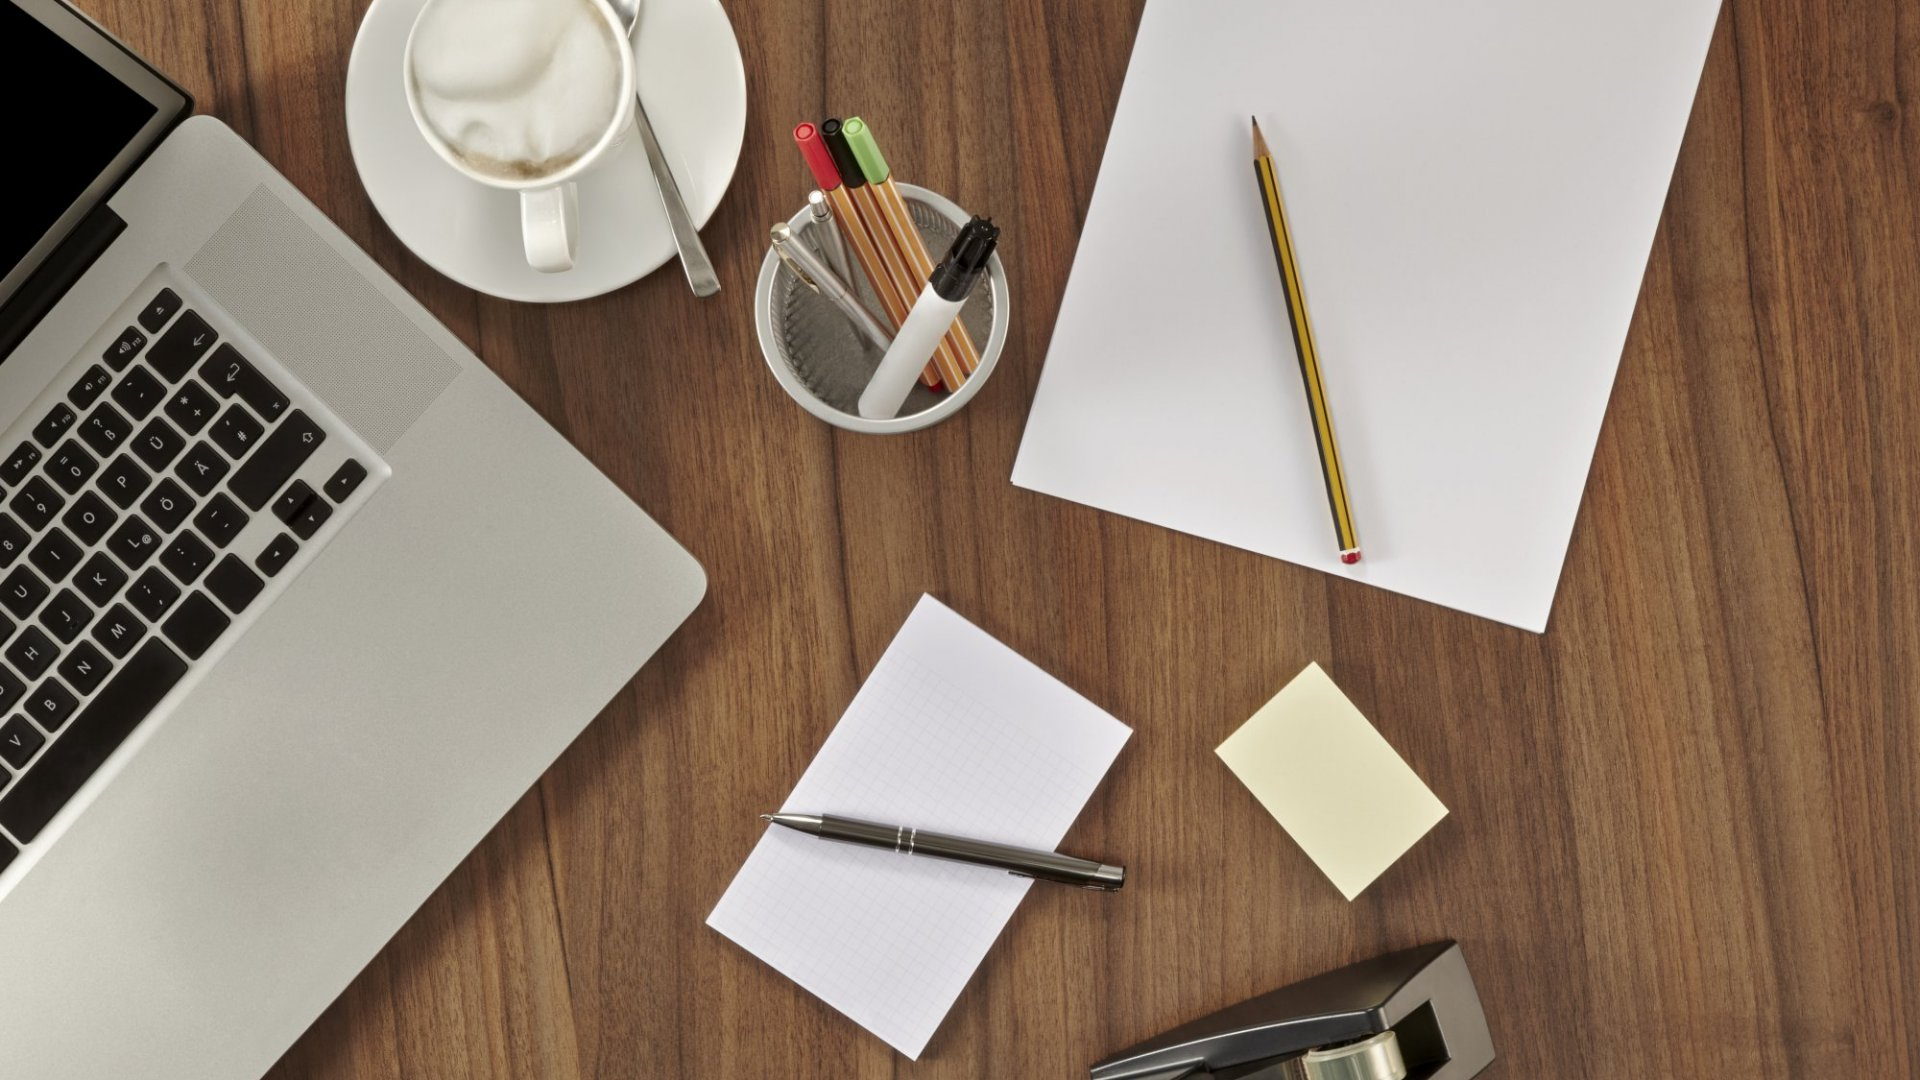 Top 5 Productivity Tips From Performance Experts